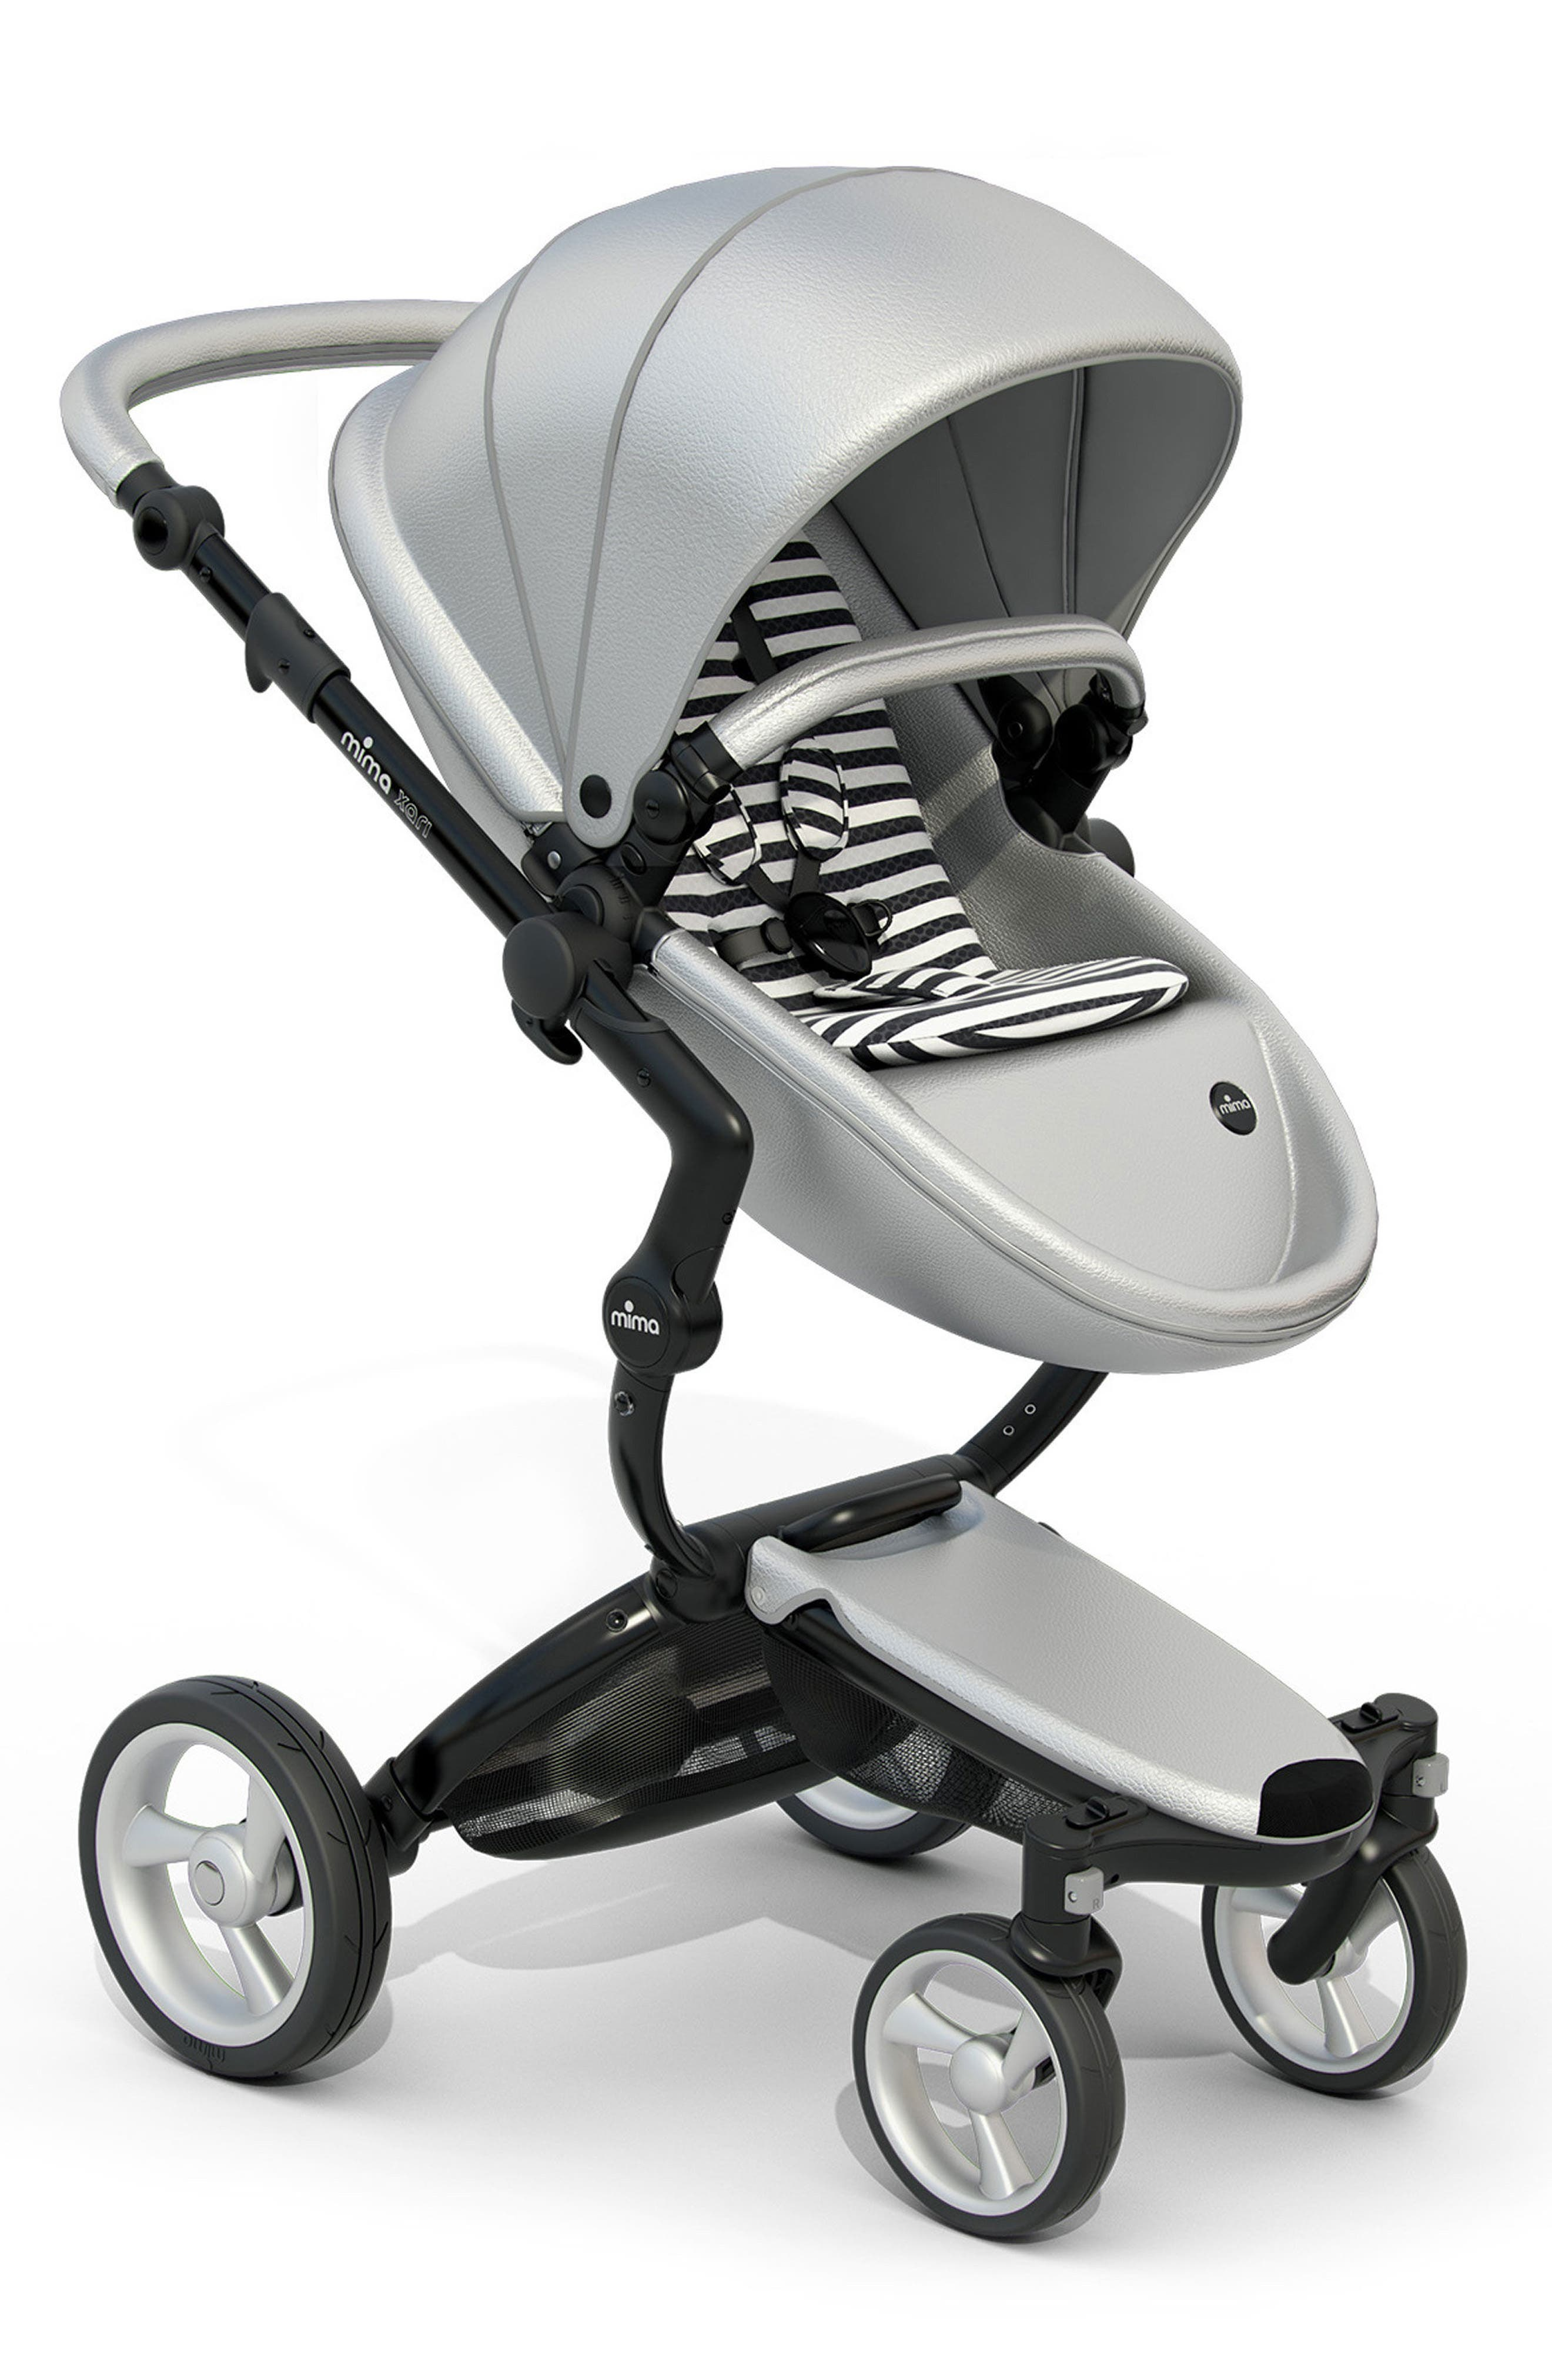 Xari Black Chassis Stroller with Reversible Reclining Seat & Carrycot,                         Main,                         color, BLK/WHT